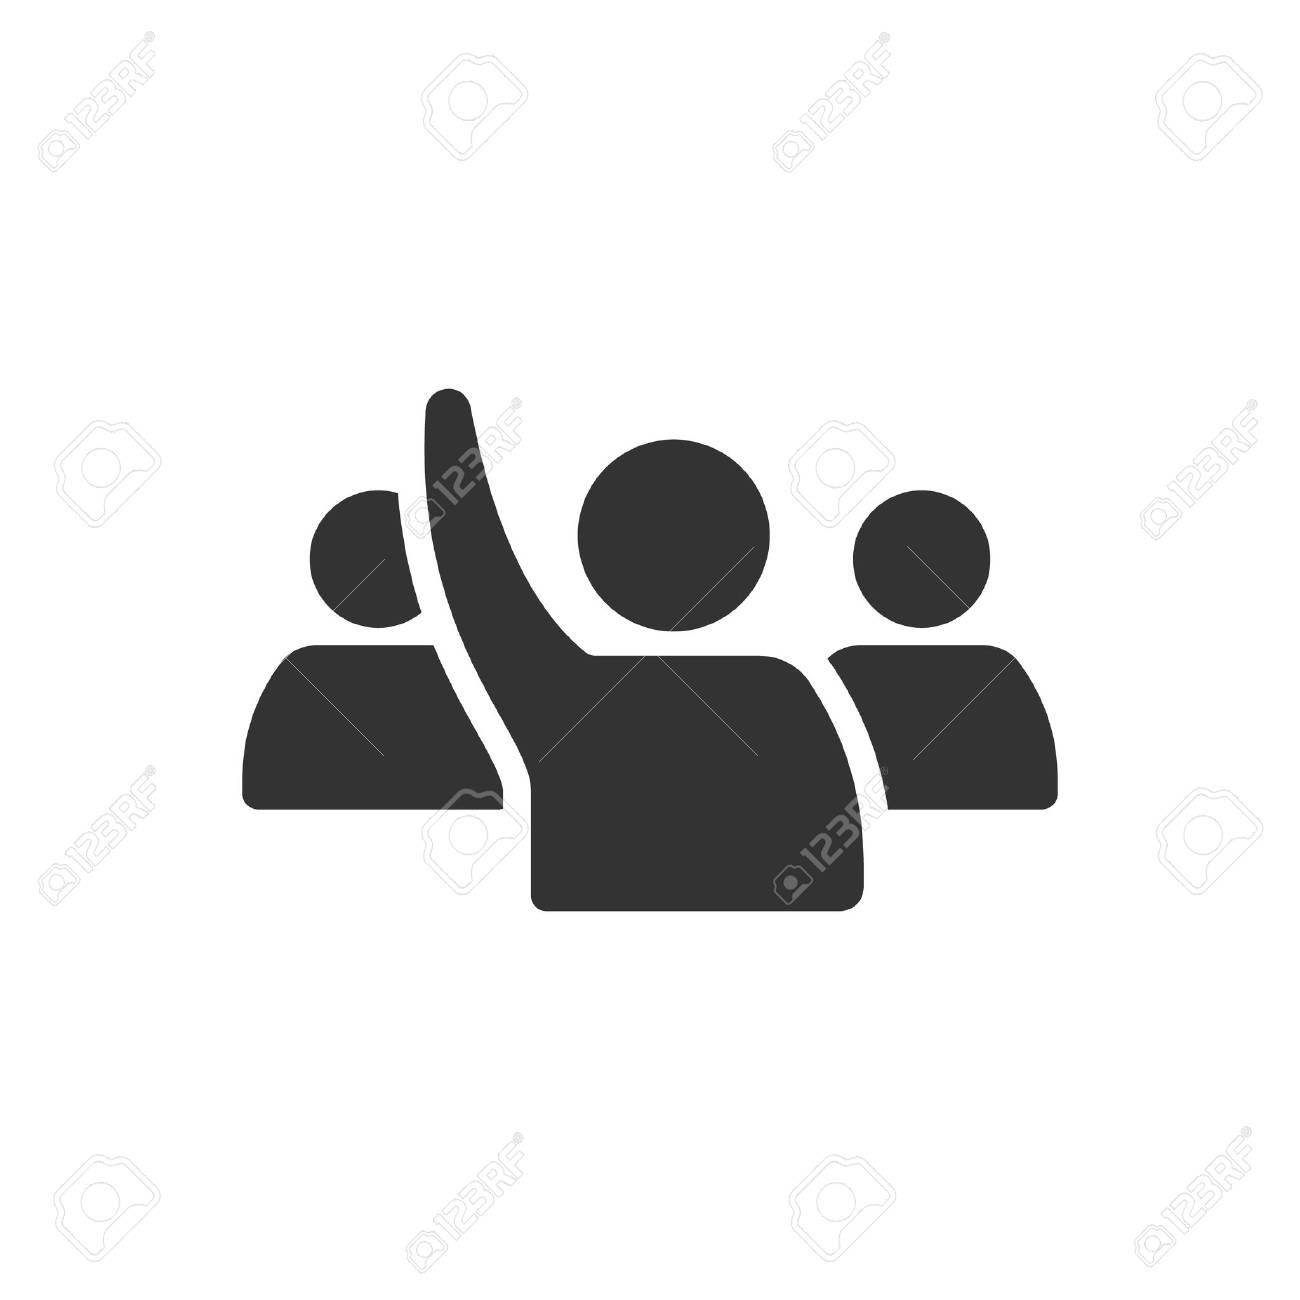 People raise hand icon in single color. Business finance buying auction student answer - 70487454